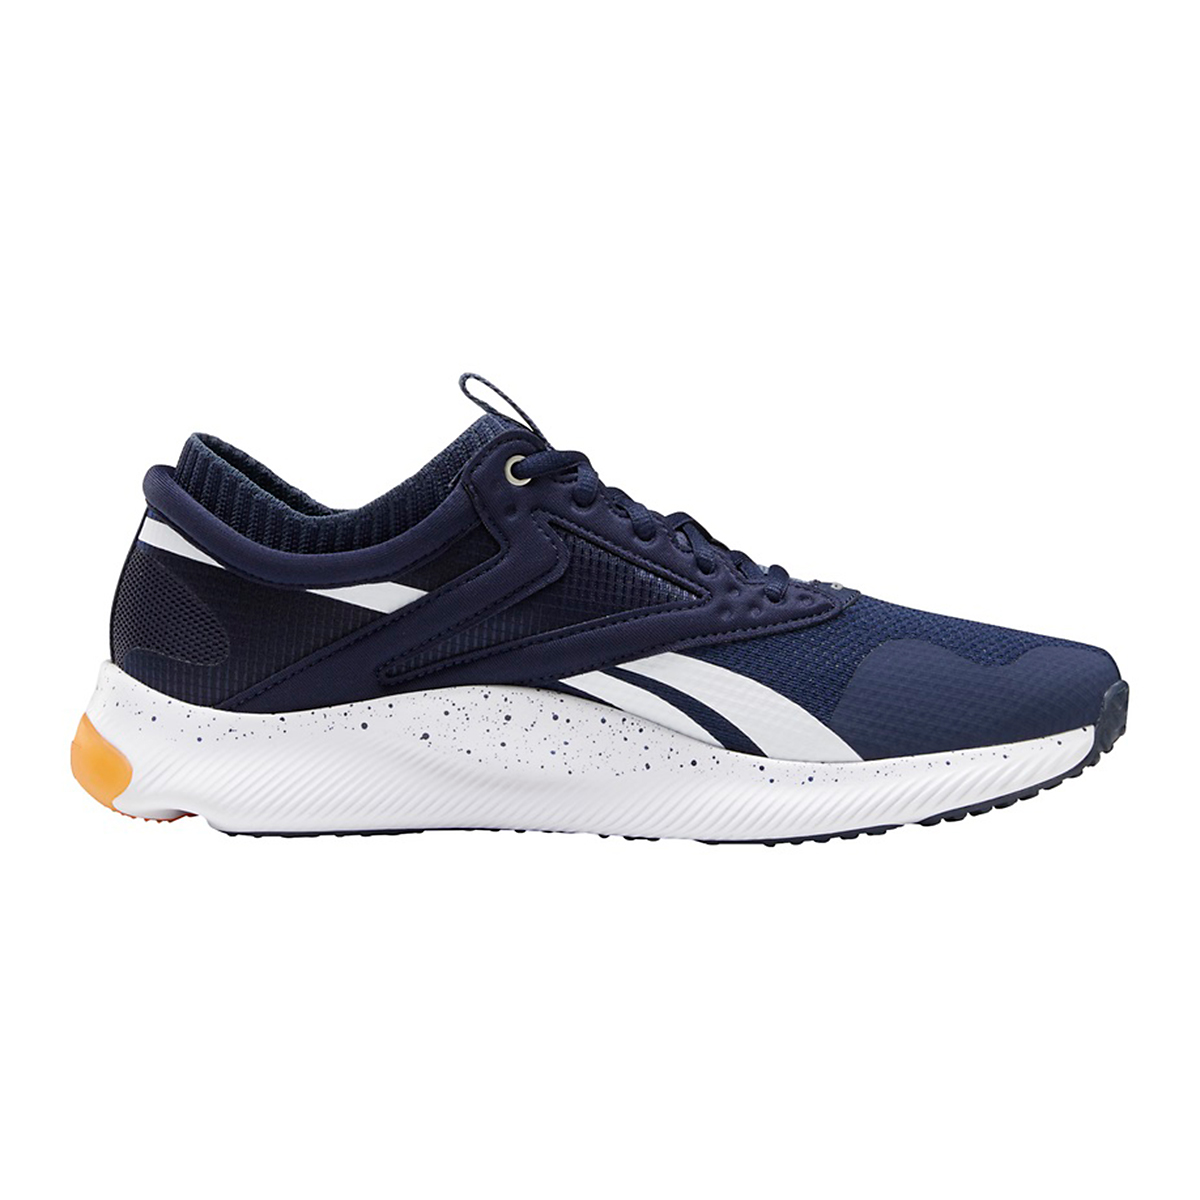 Men's Reebok HIIT Running Shoe - Color: Vector Navy/White - Size: 6 - Width: Regular, Vector Navy/White, large, image 1